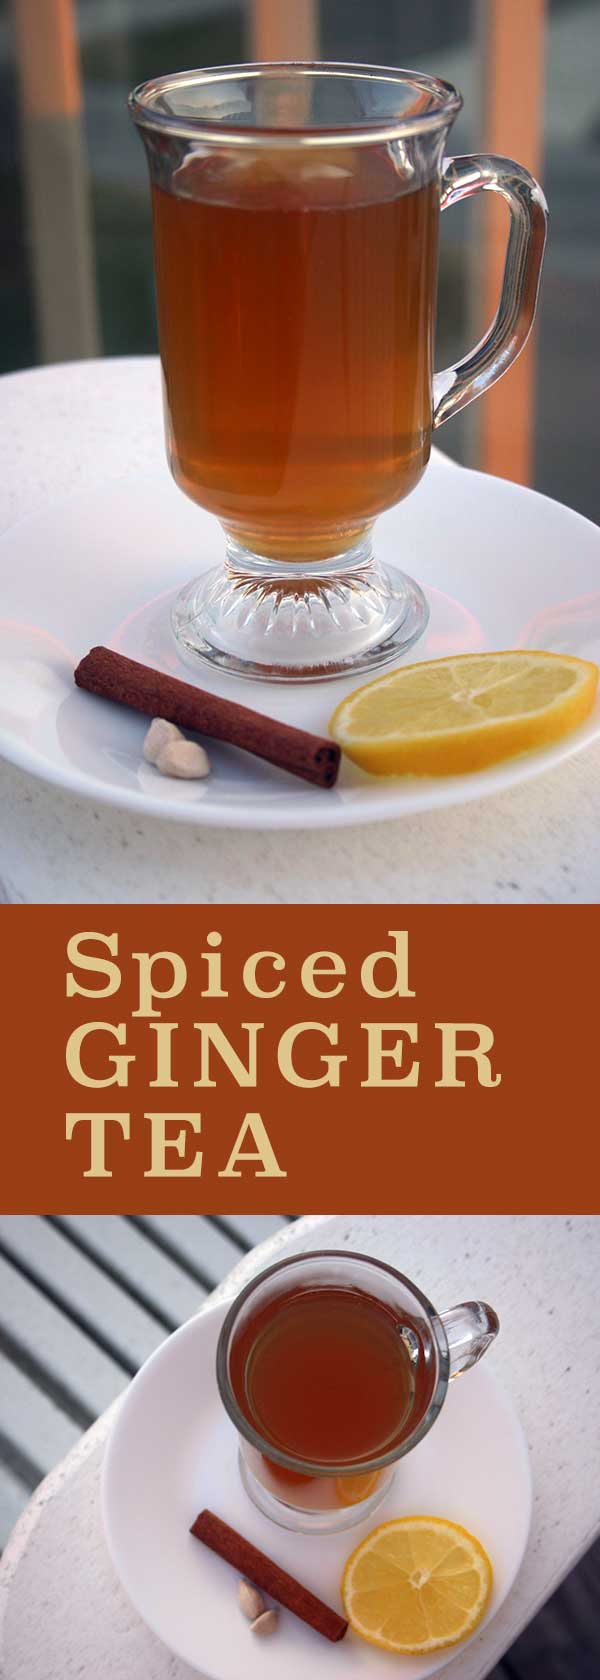 Spiced Ginger Tea - great for digestion | diabeticfoodie.com